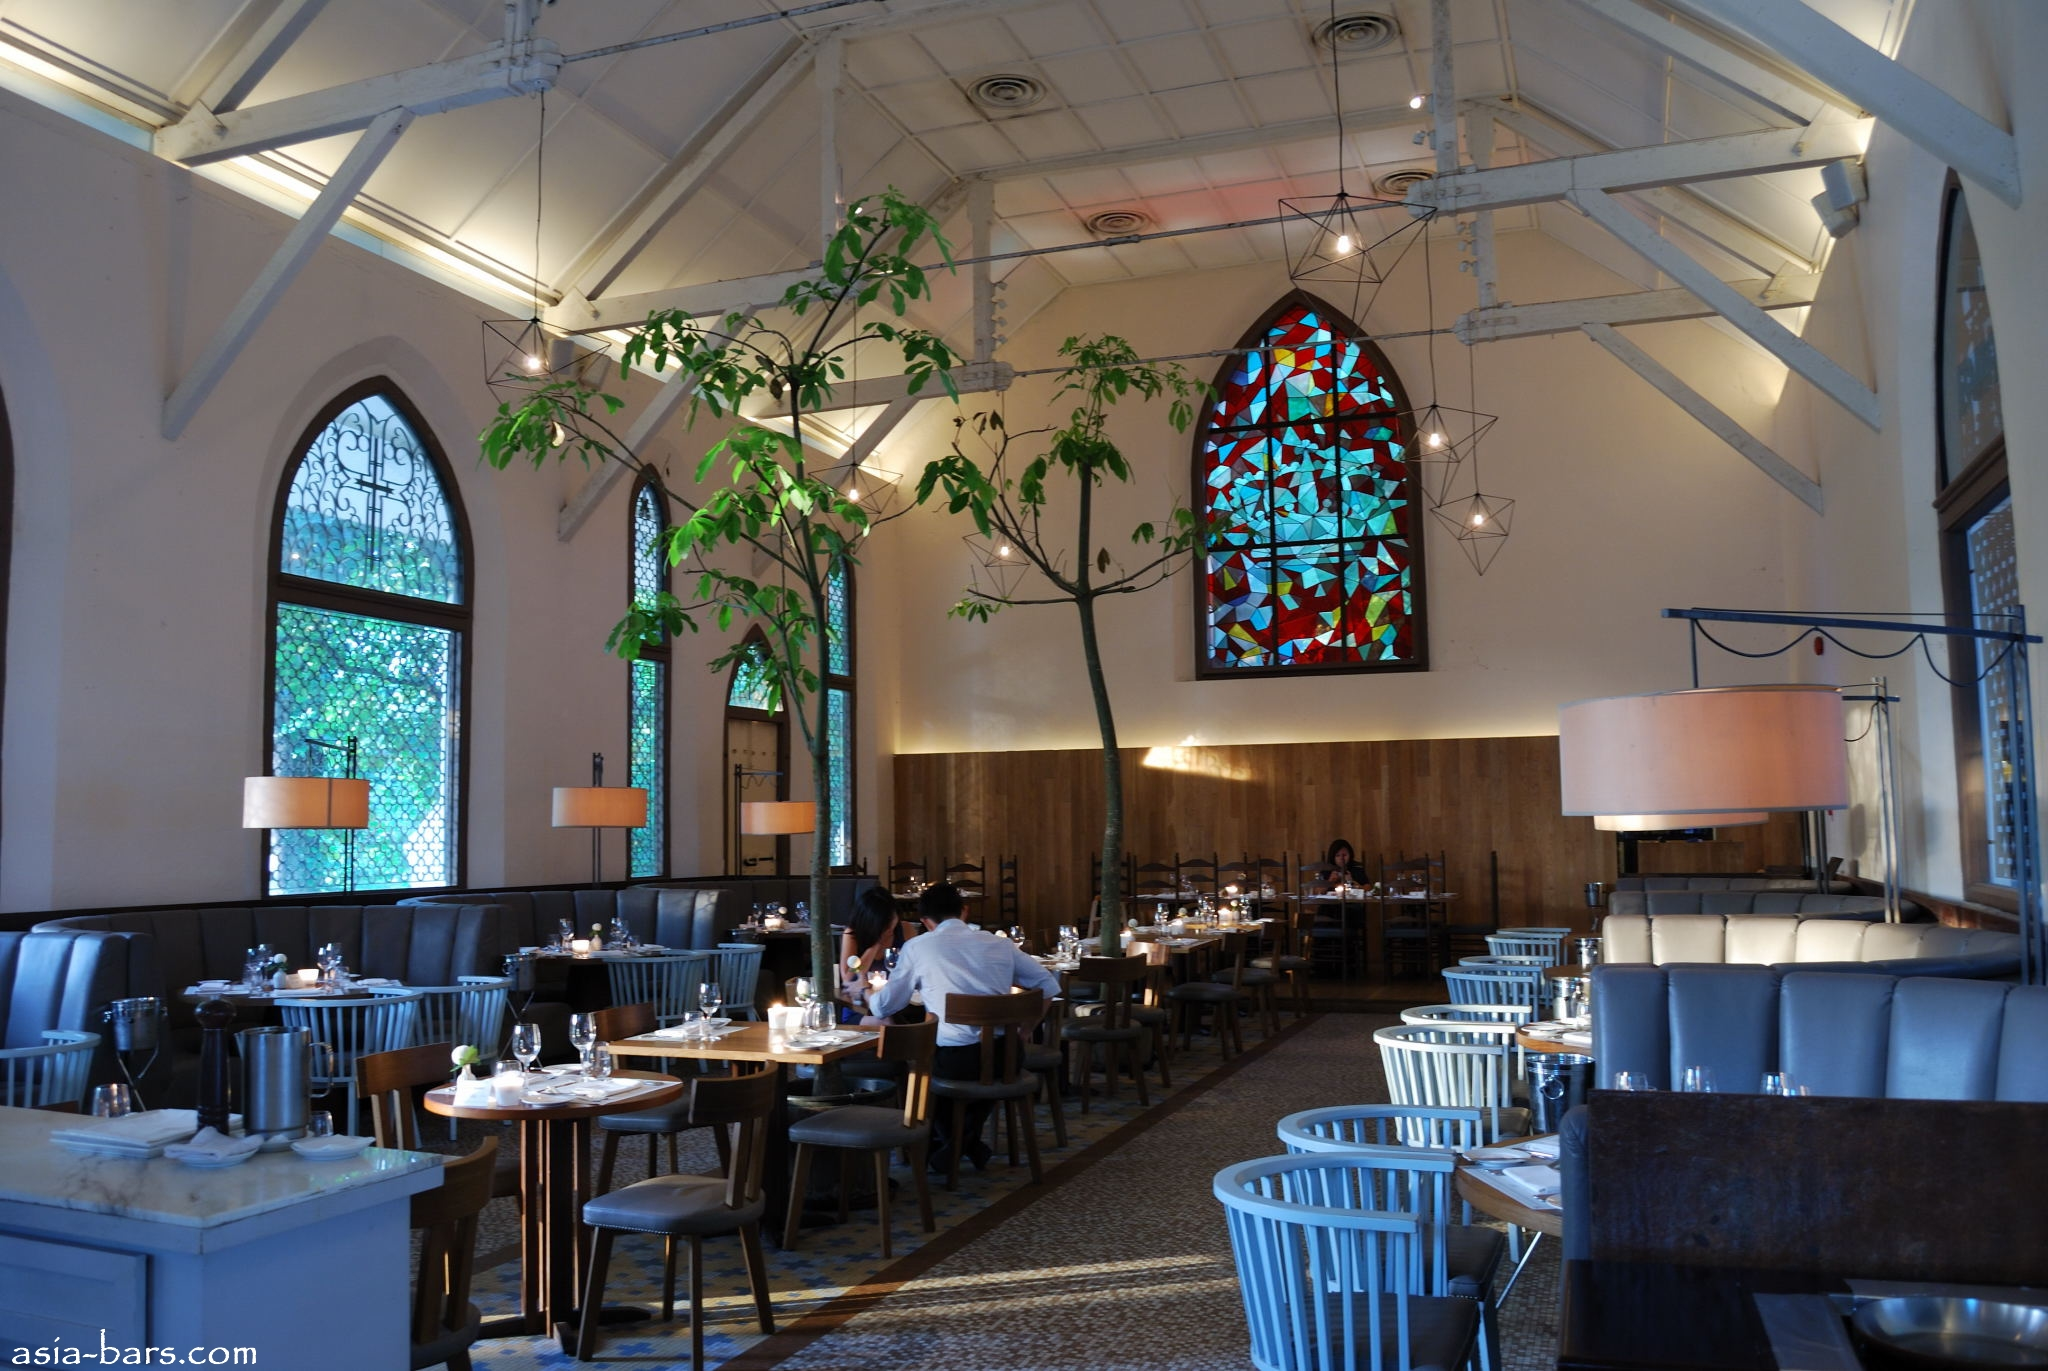 Venue For Baby Shower Singapore Part - 25: Top 10 21st Birthday Party Venues In Singapore | We Are SpacesMeeting Rooms  And Event Venues In Singapore | We Are Spaces